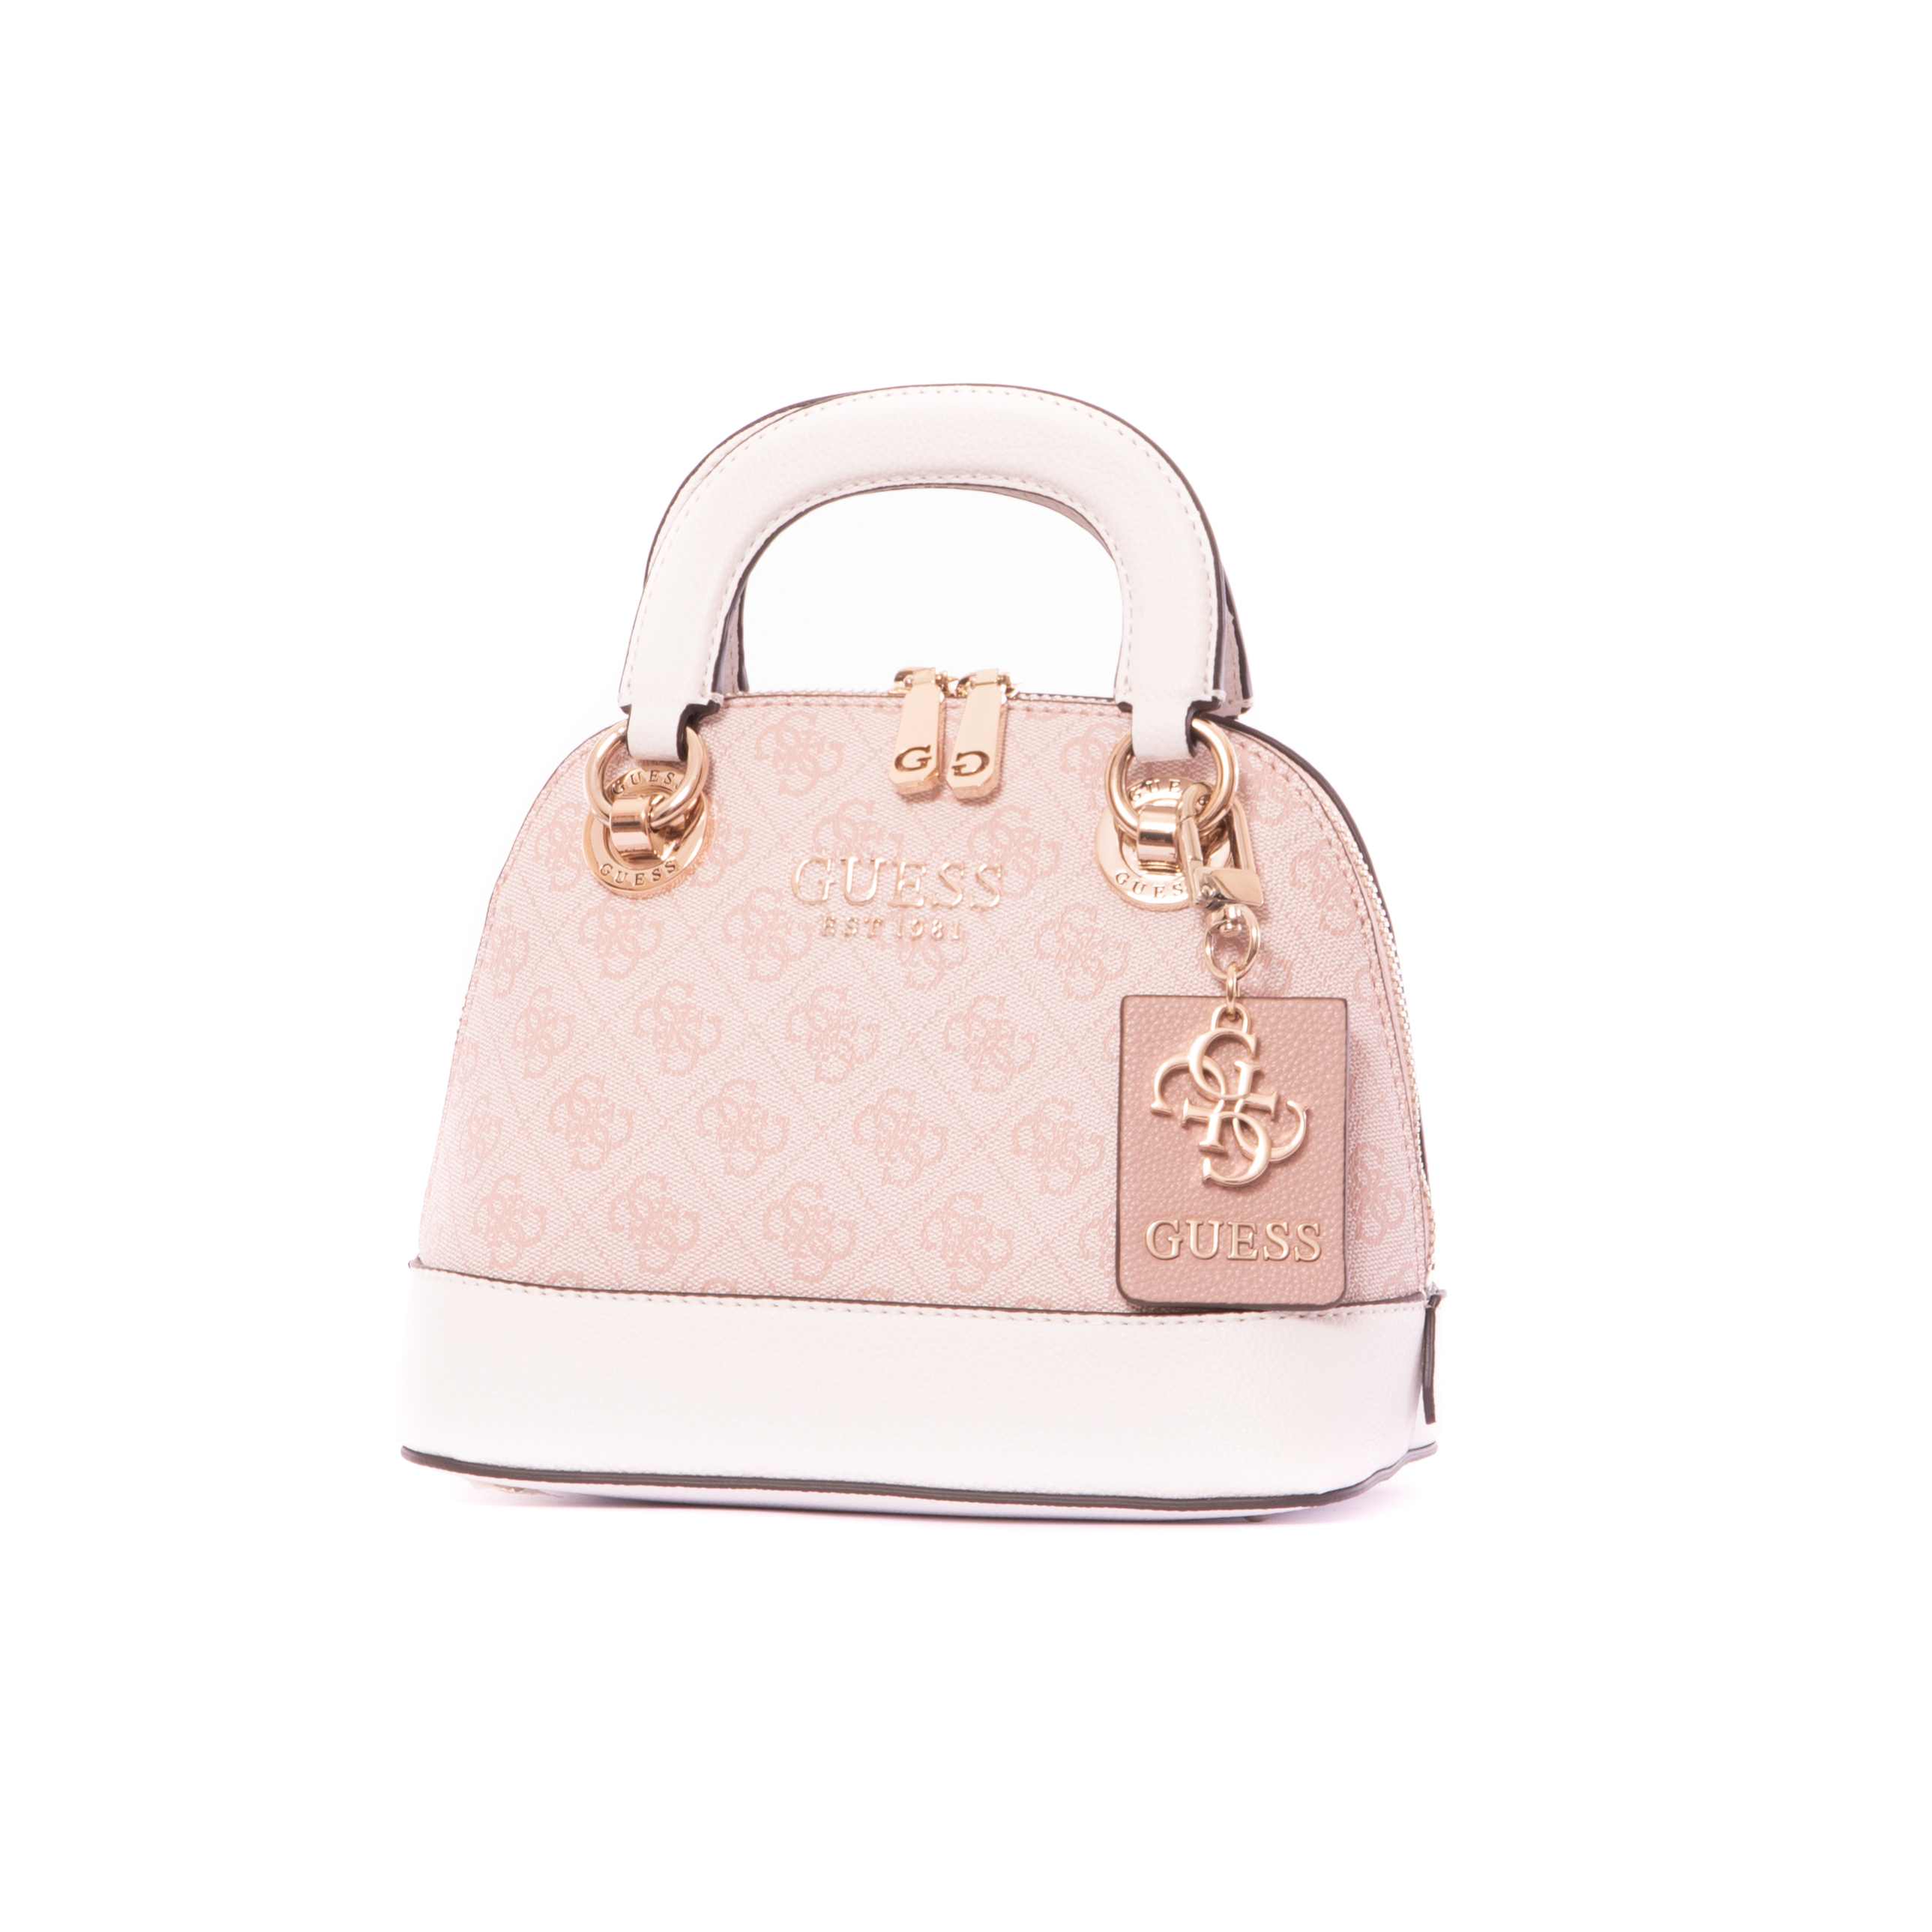 cathleen small dome satchel